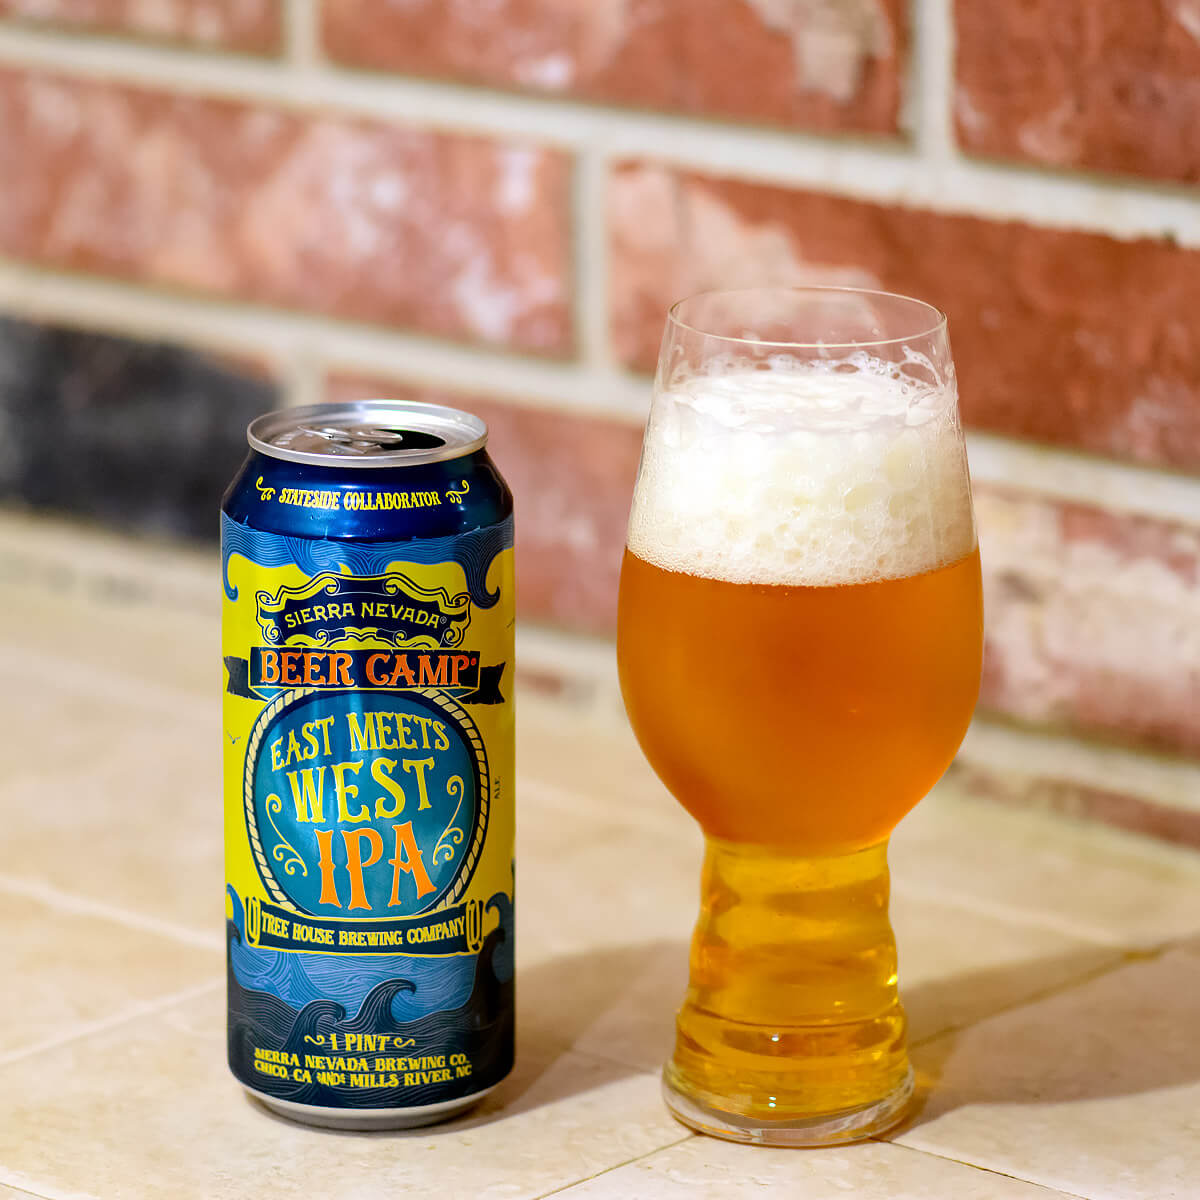 East Meets West IPA, an American IPA collaboratively brewed by Sierra Nevada Brewing Co. and Tree House Brewing Company